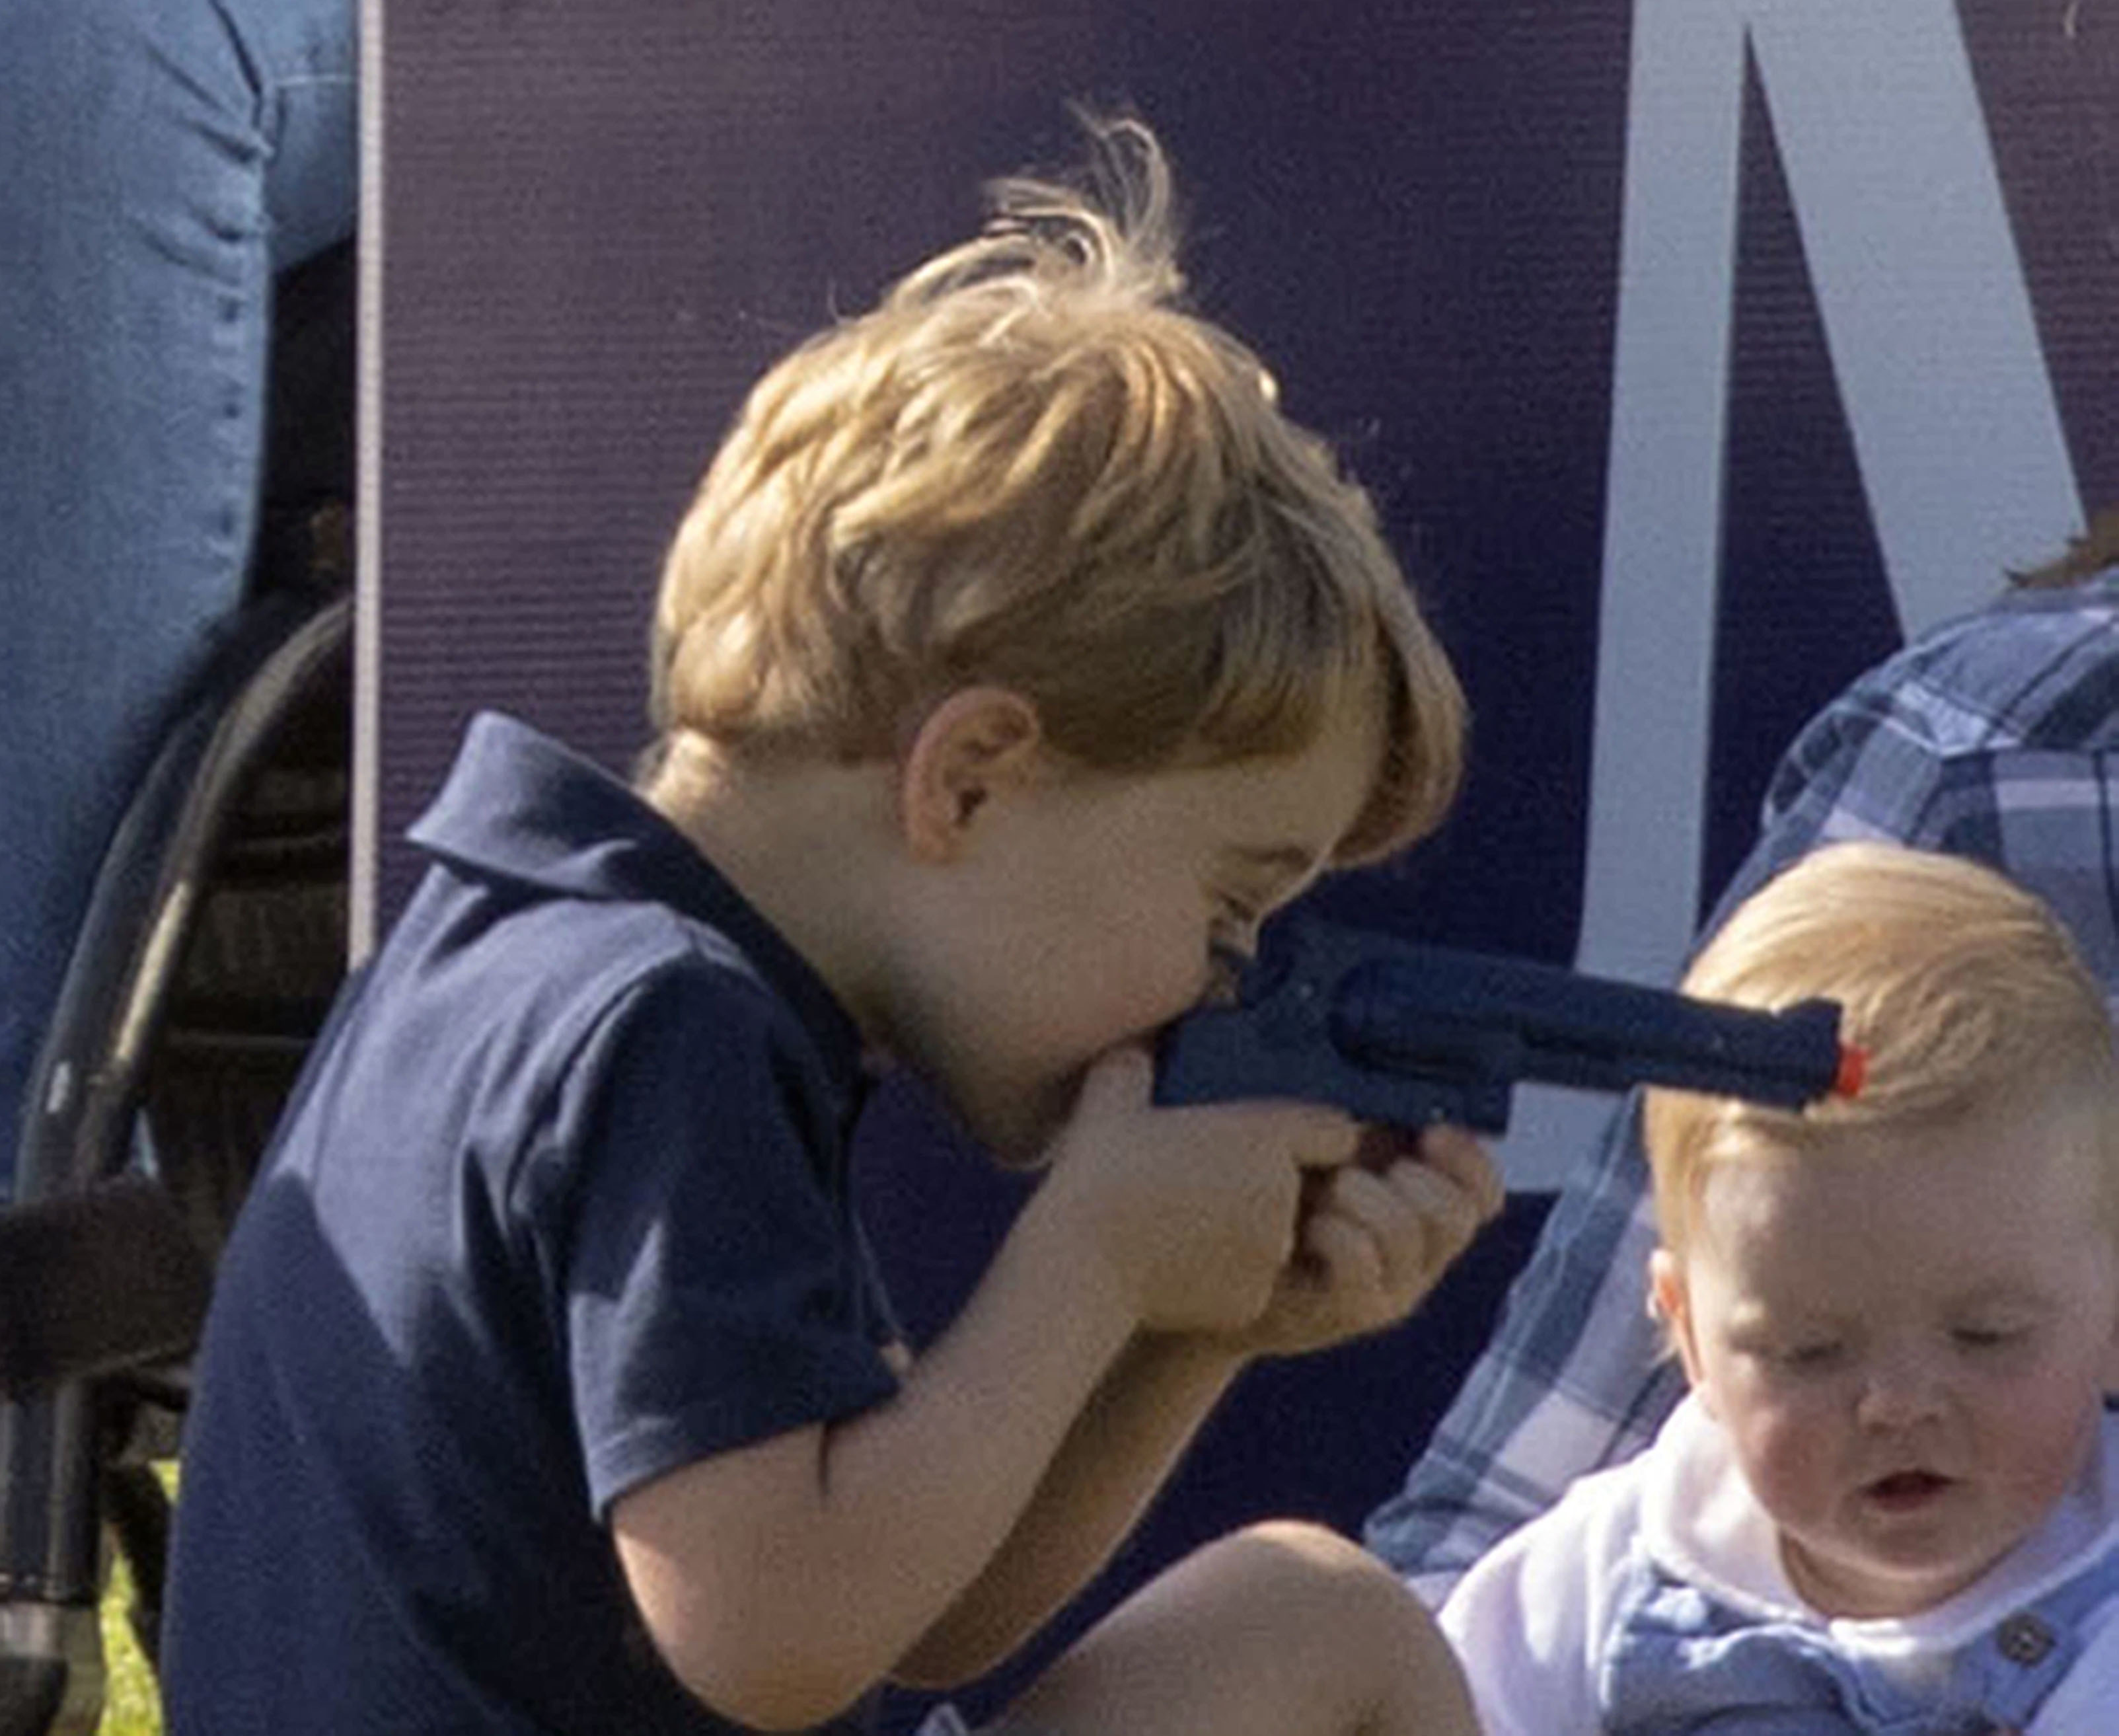 Prince George playing with toy gun